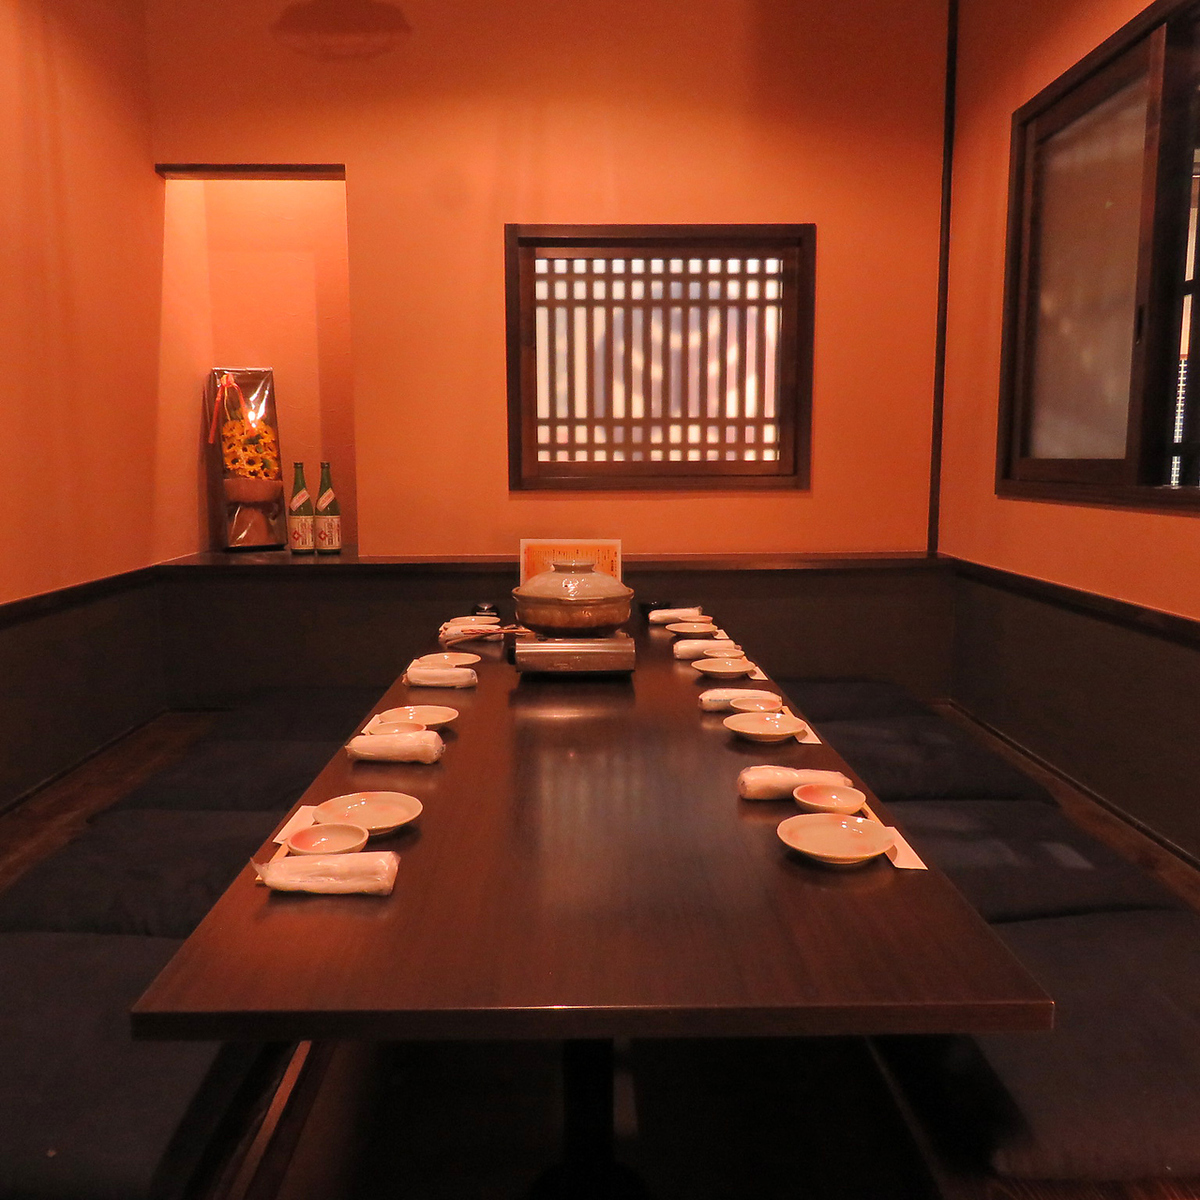 Complet single room digging tatami mat seat 6 ~ 8 people also entertainment use ◎